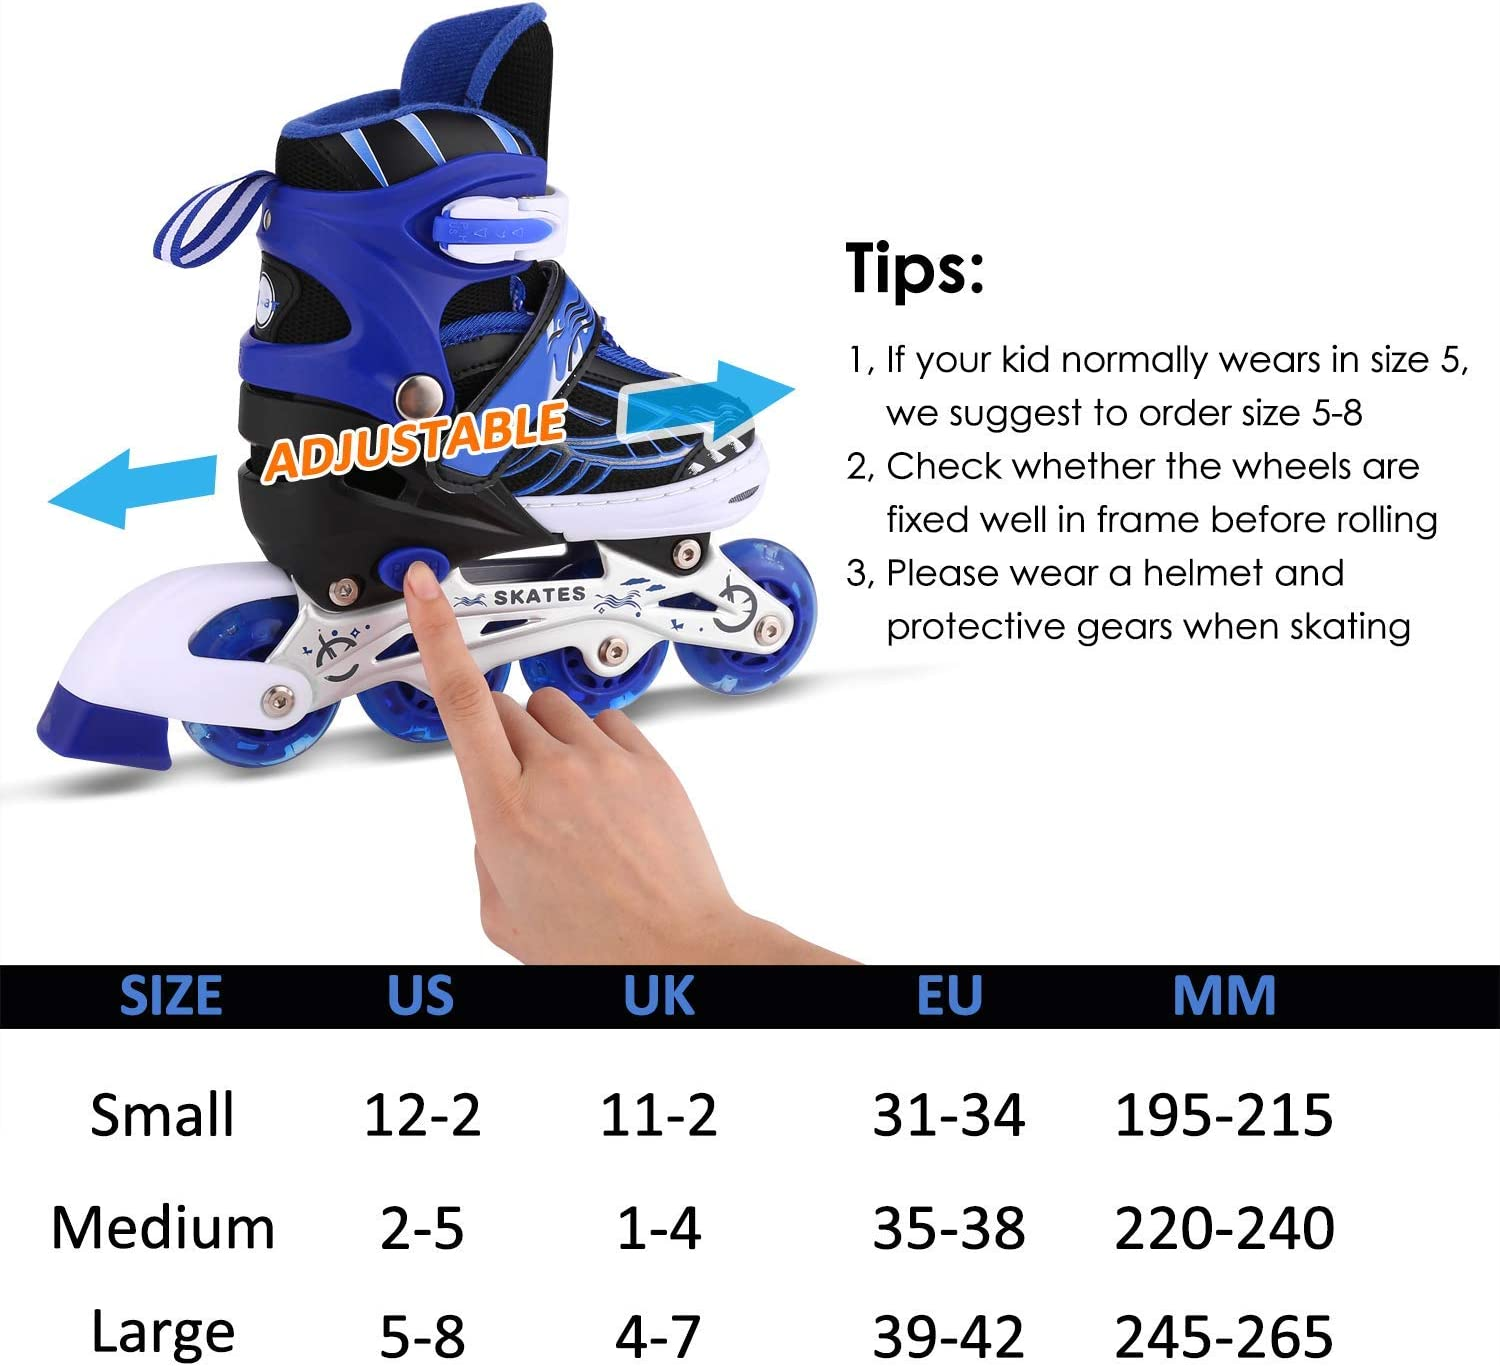 ANCHEER Inline Skates for Kids Adjustable with Light Up Wheels Beginner Roller Fun Flashing Illuminating Roller Skates for Kids Boys and Girls 2 Colors and 3 Sizes